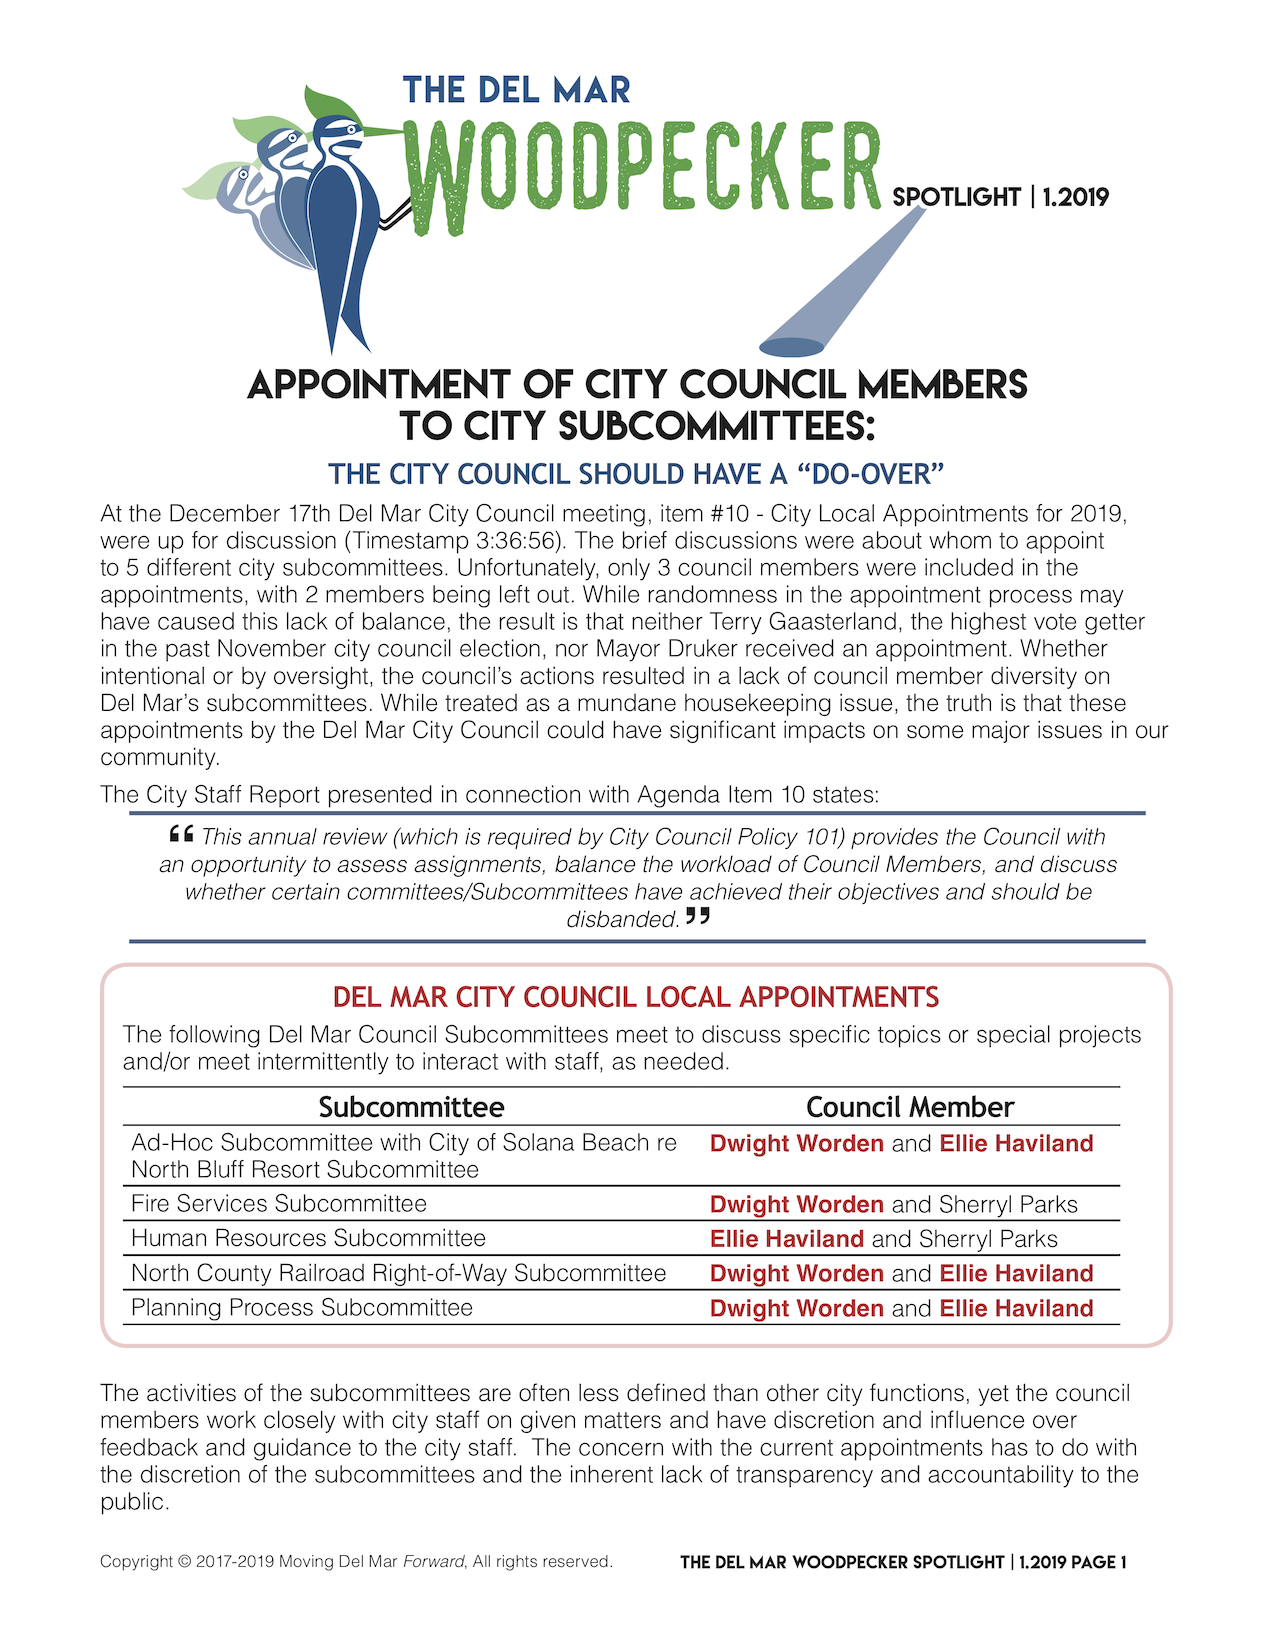 "Spotlight 1/2019 - 'APPOINTMENT OF CITY COUNCIL MEMBERS TO CITY SUBCOMMITTEES:The city council should have a ""do-over""'"